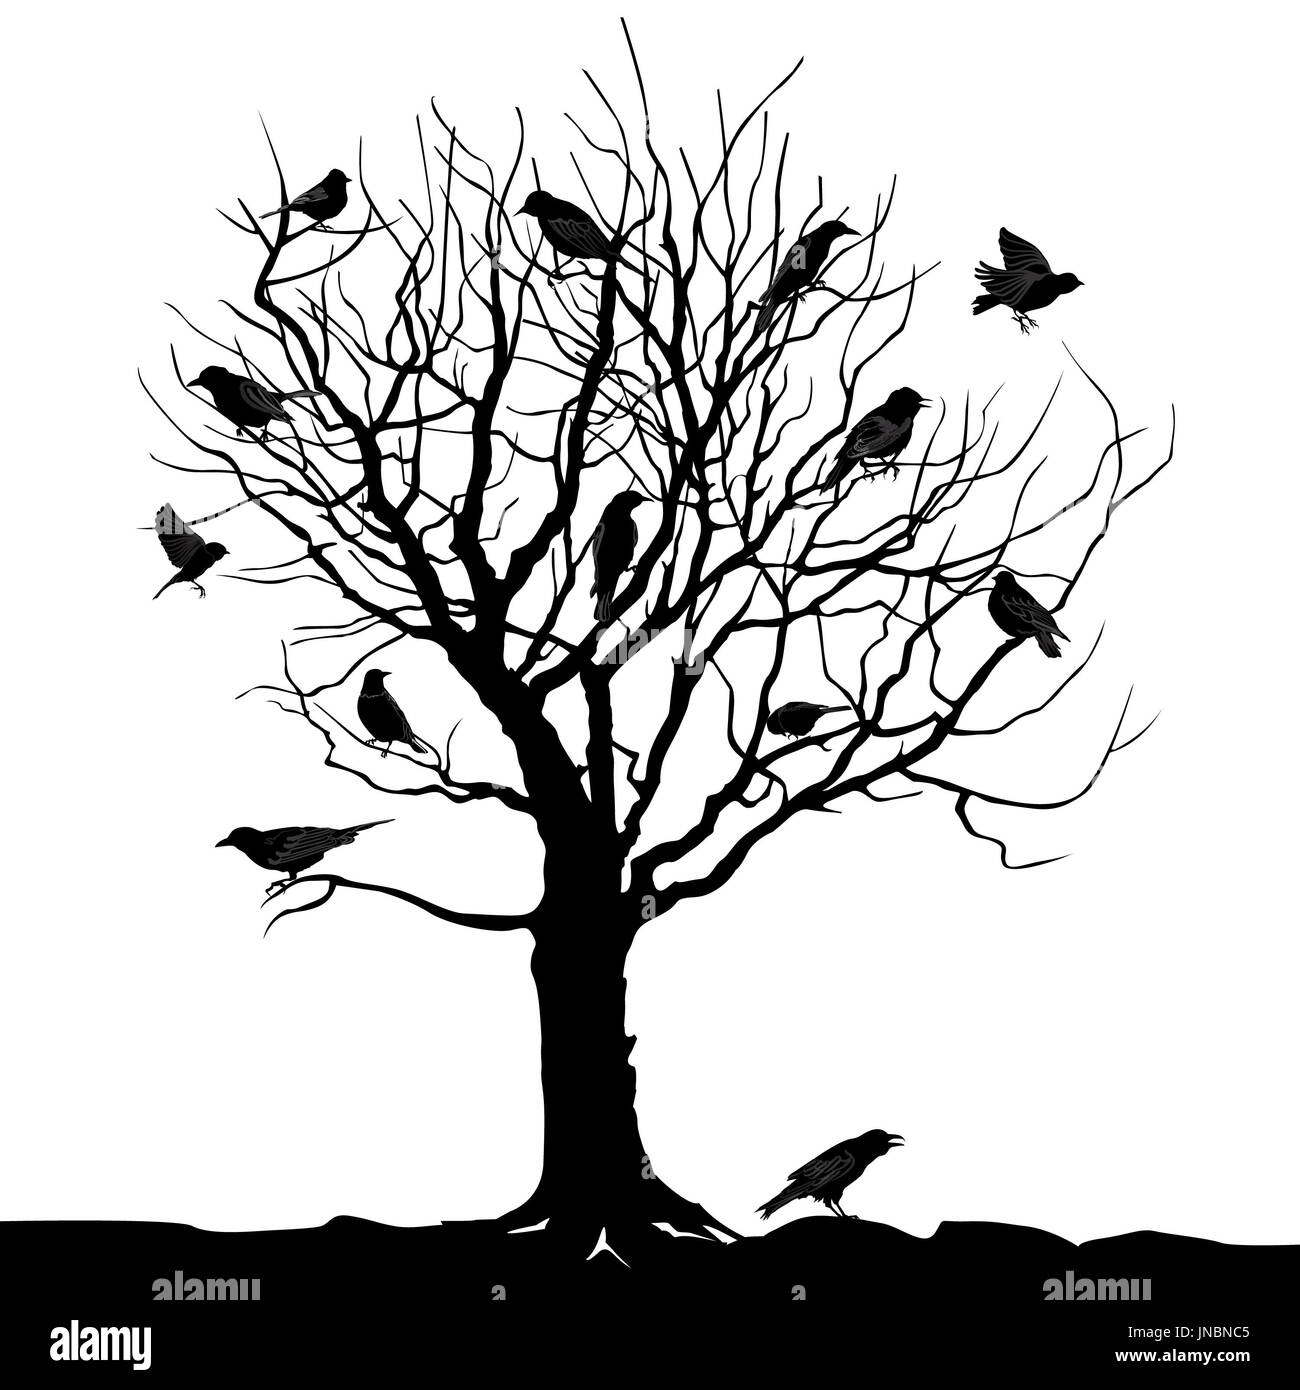 Winter tree with birds on twig vector silhouette illustration - Stock Image